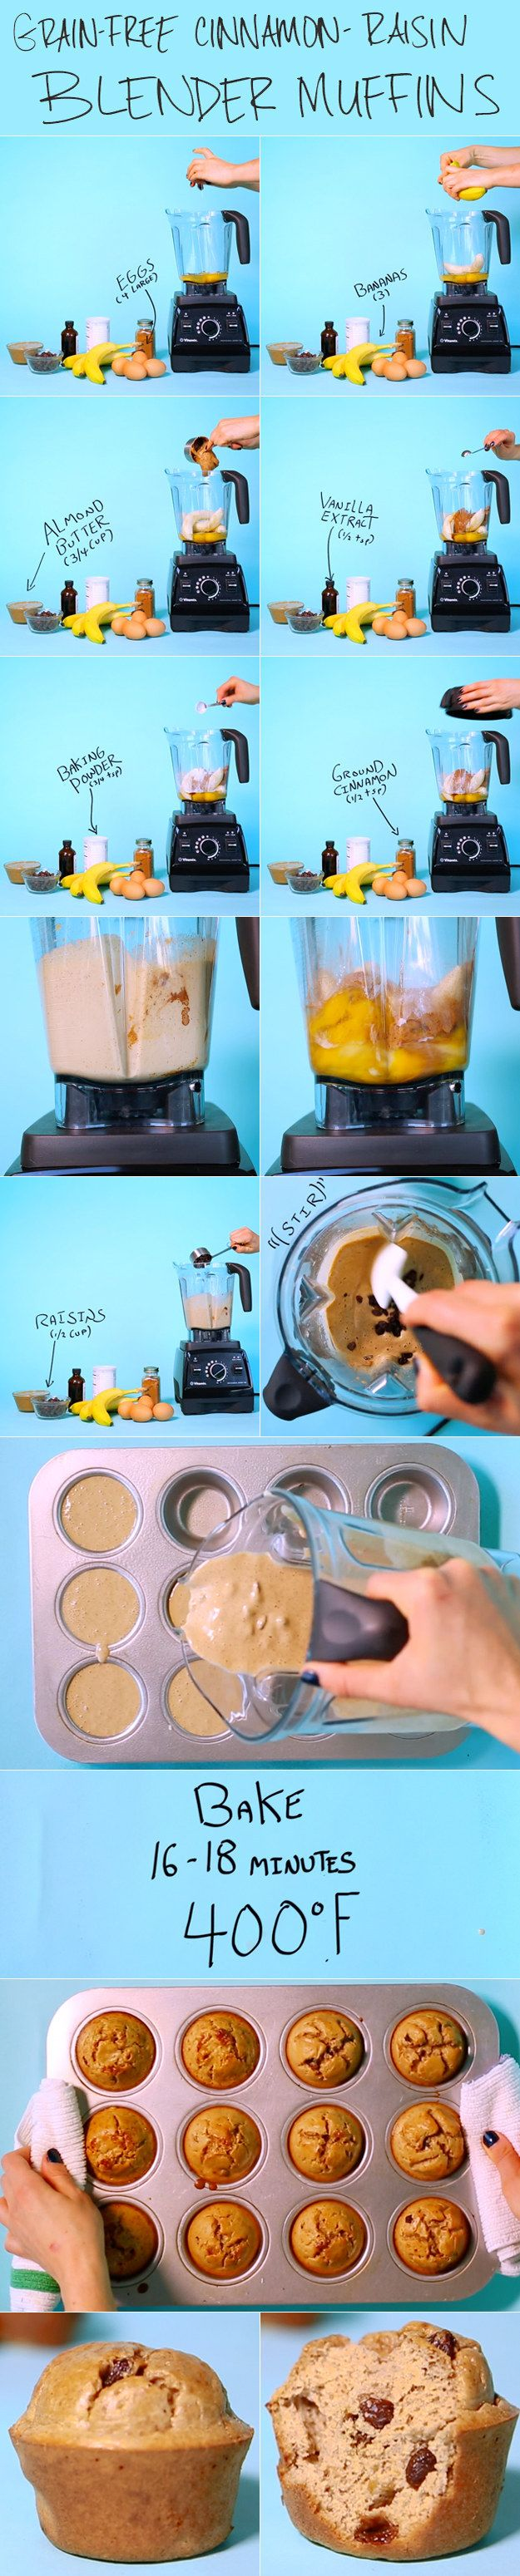 Make a batch whenever you have ripe bananas, then eat them for breakfast all week!